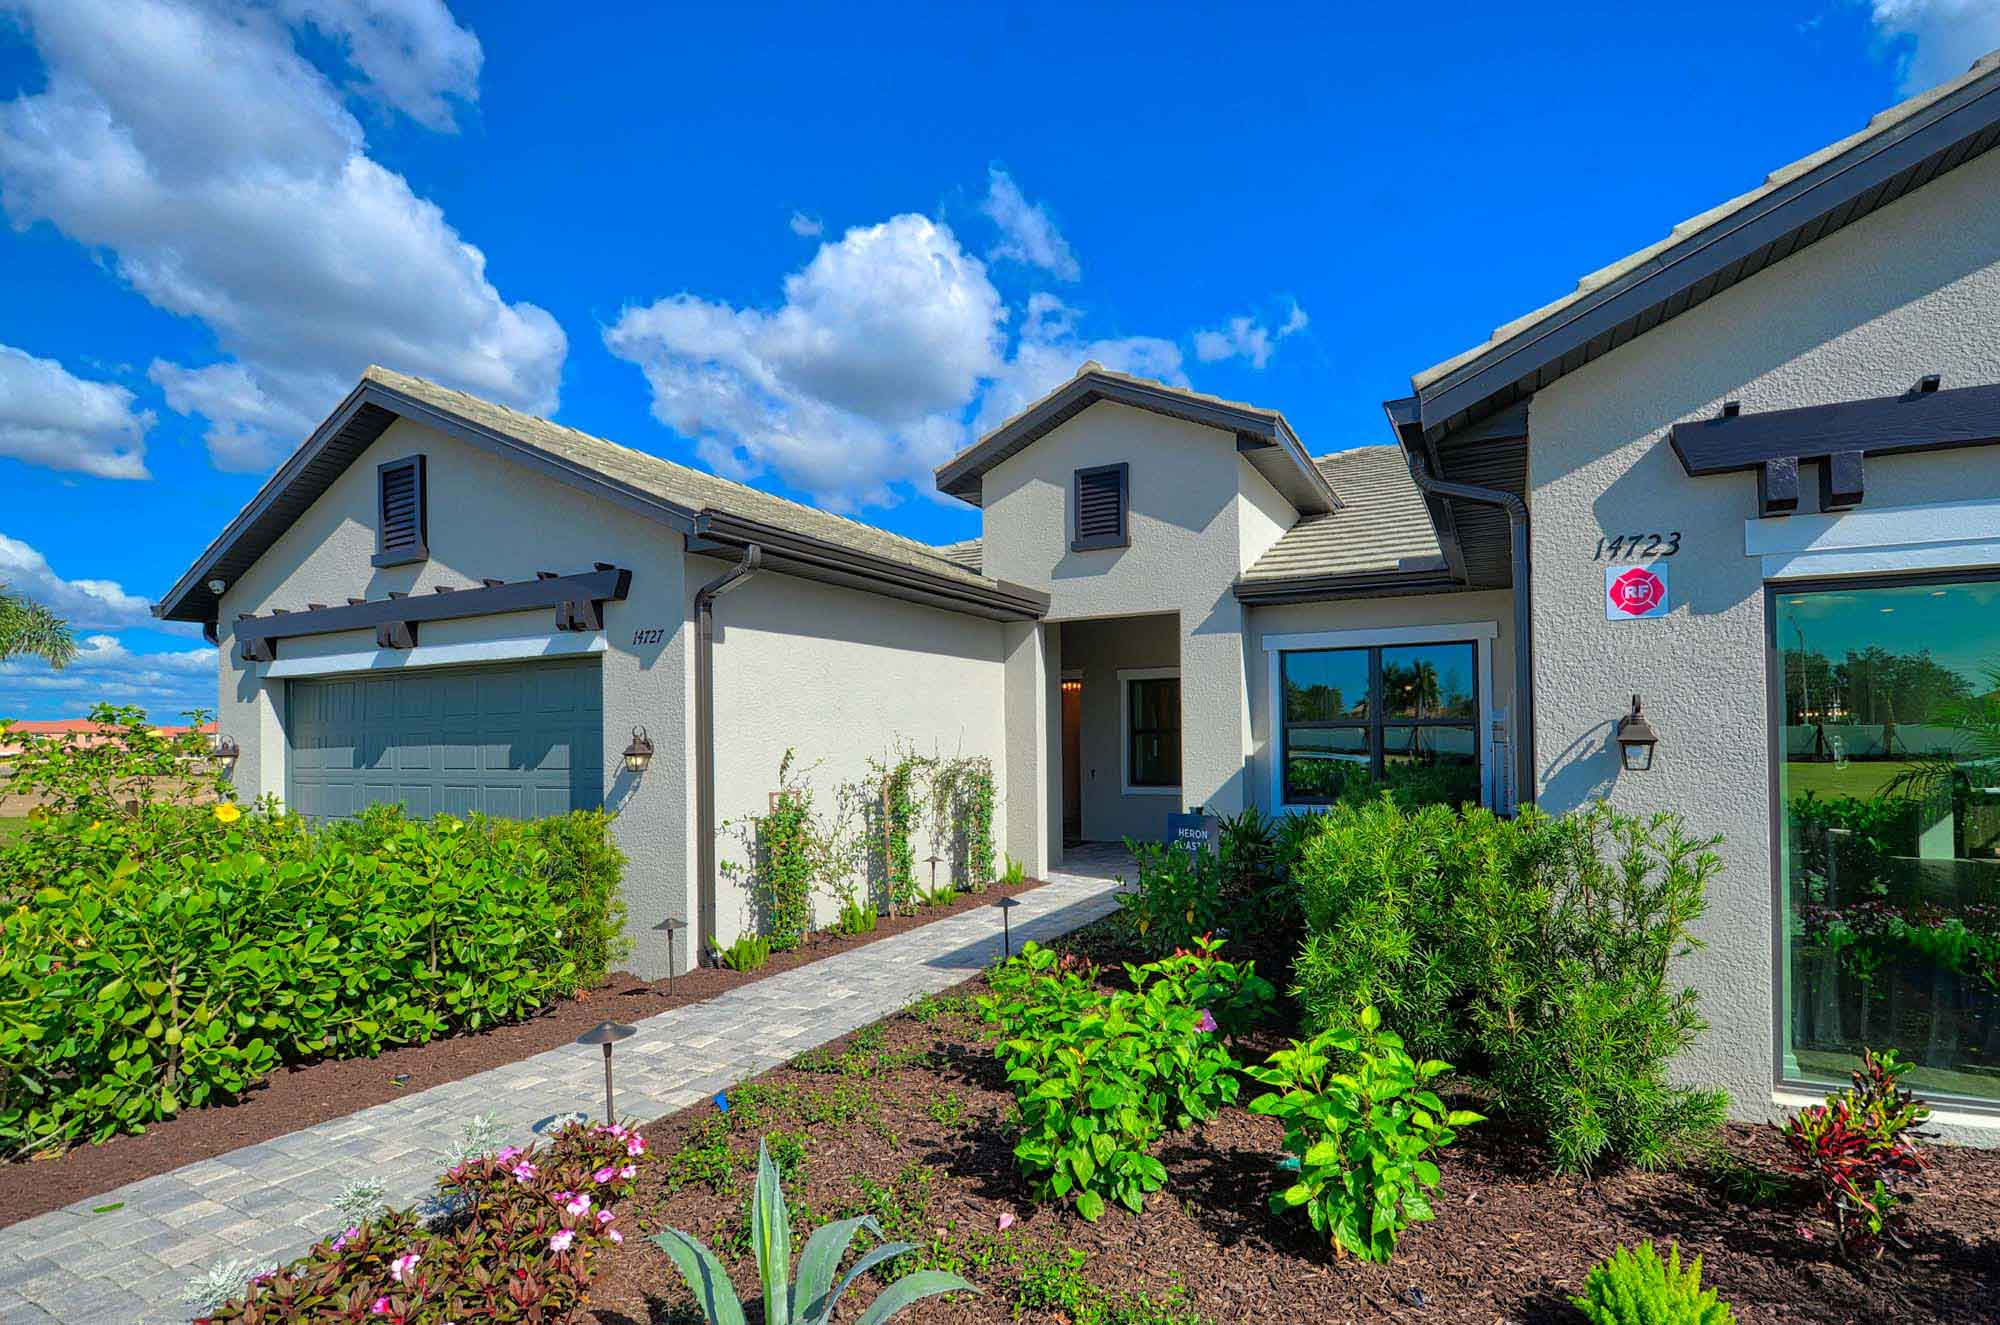 New Community of Abaco Pointe